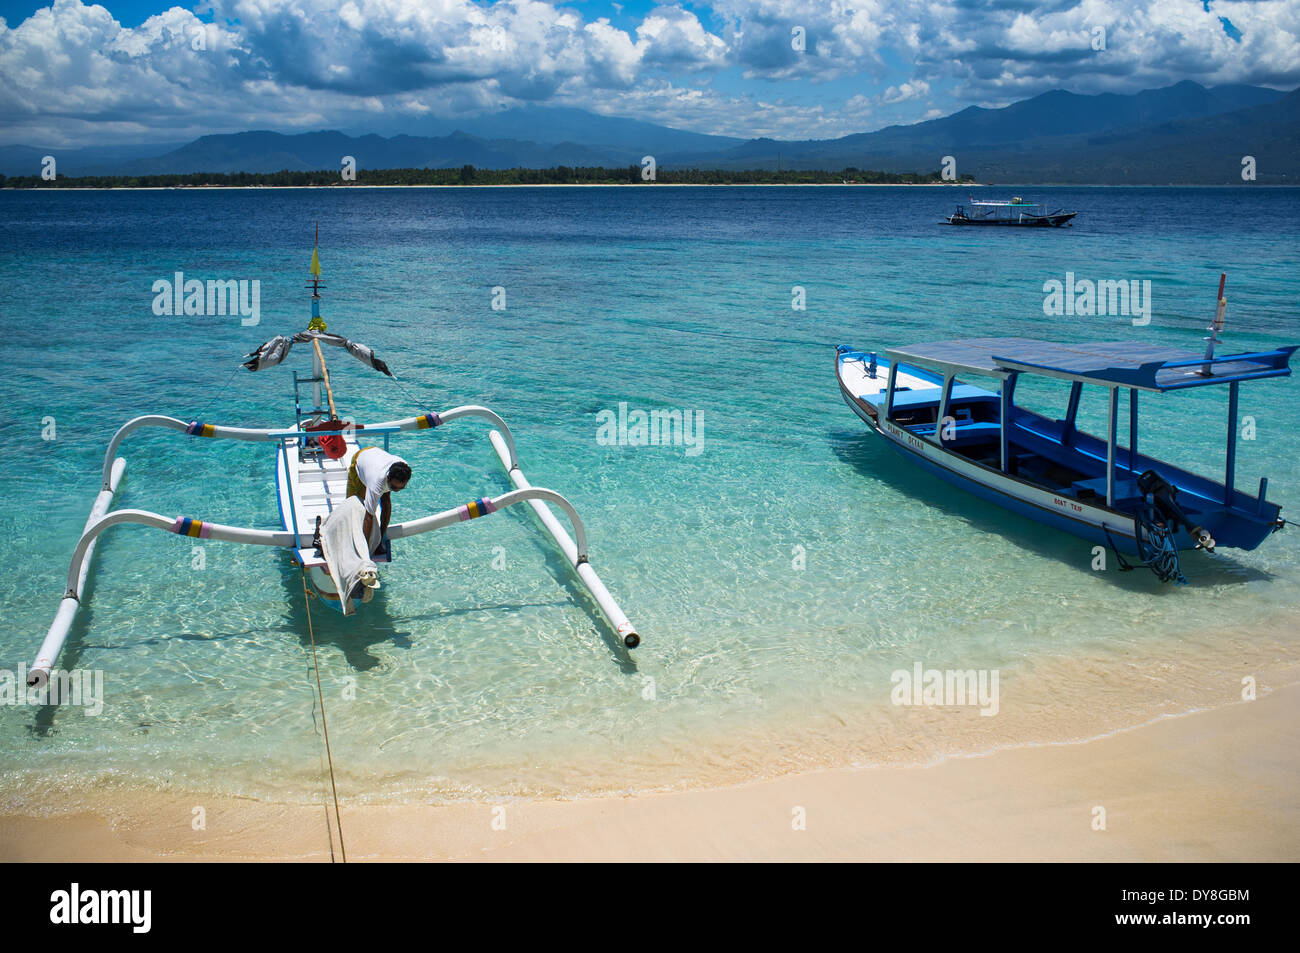 Boats moored at Gili Air, of Lombok, Indonesia, Asia - Stock Image